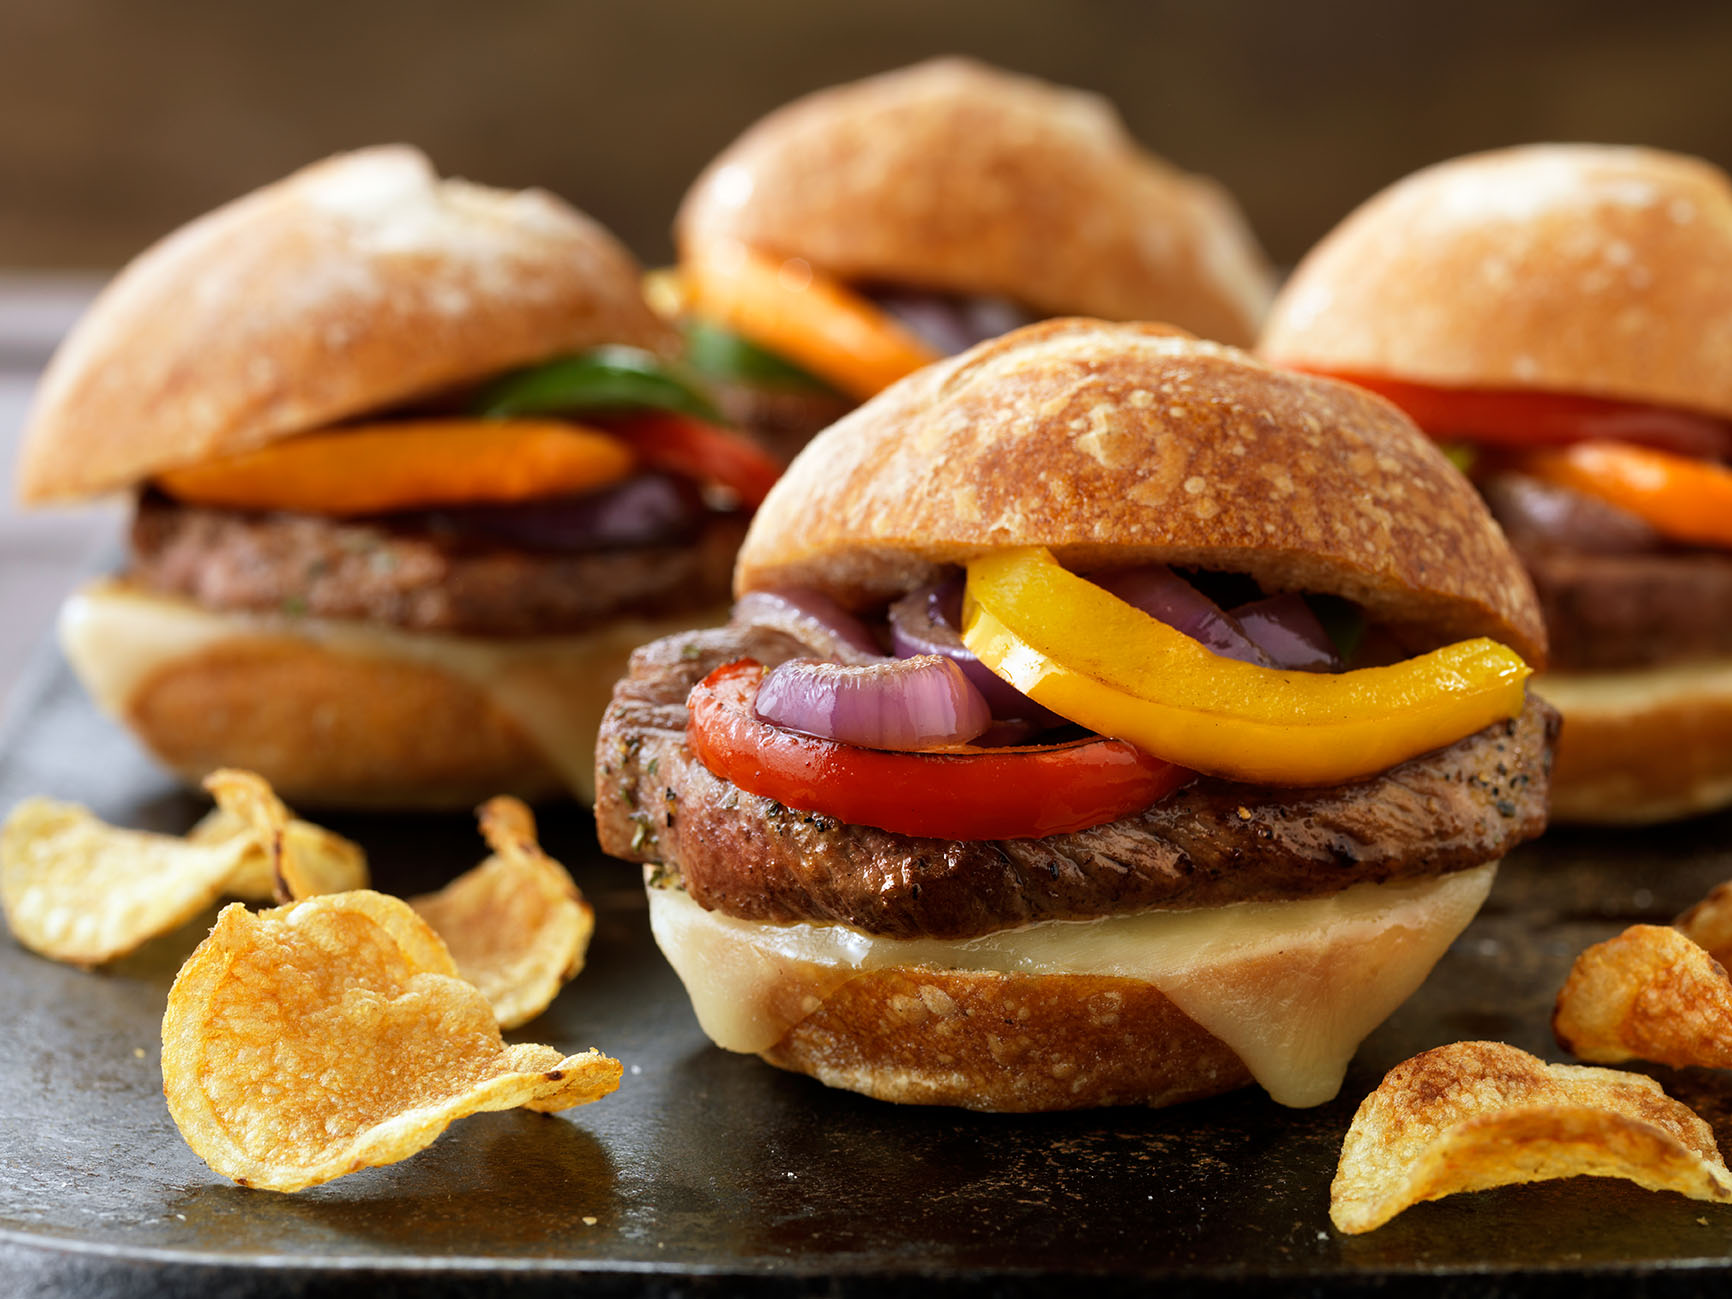 Marx-food-photography-steak-sliders.jpg